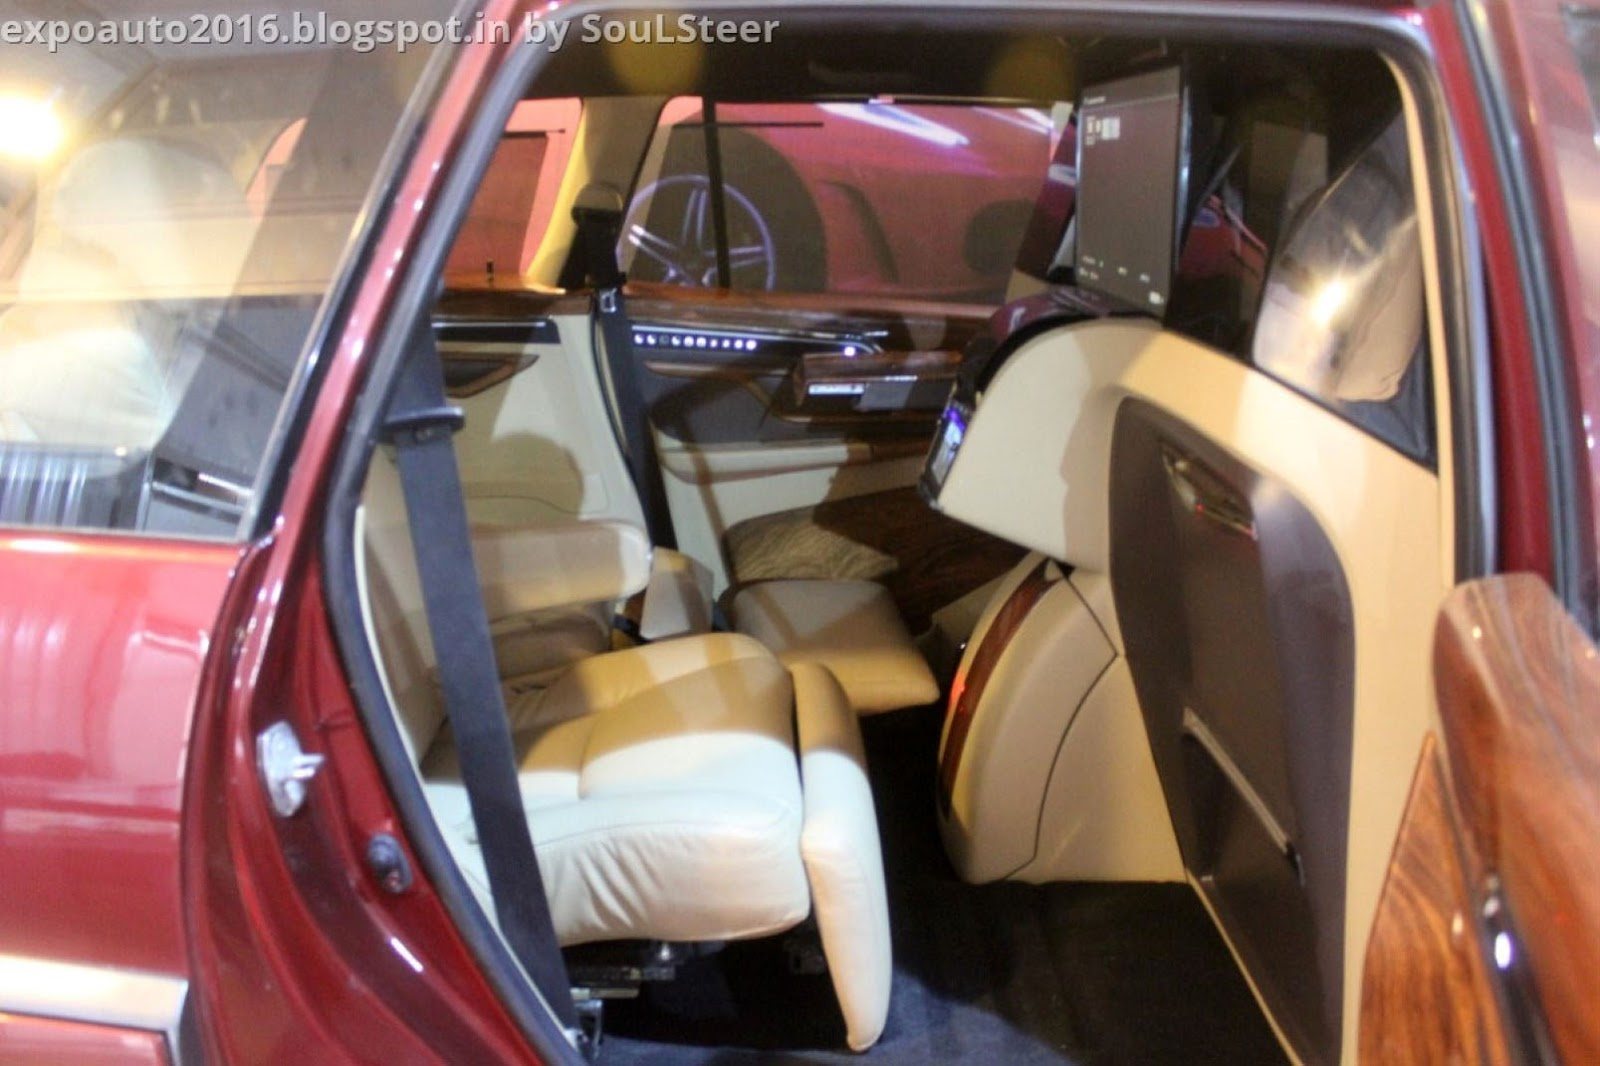 Emt covers the field of creating conceptualized rich lavish comfortable interiors on several vehicles